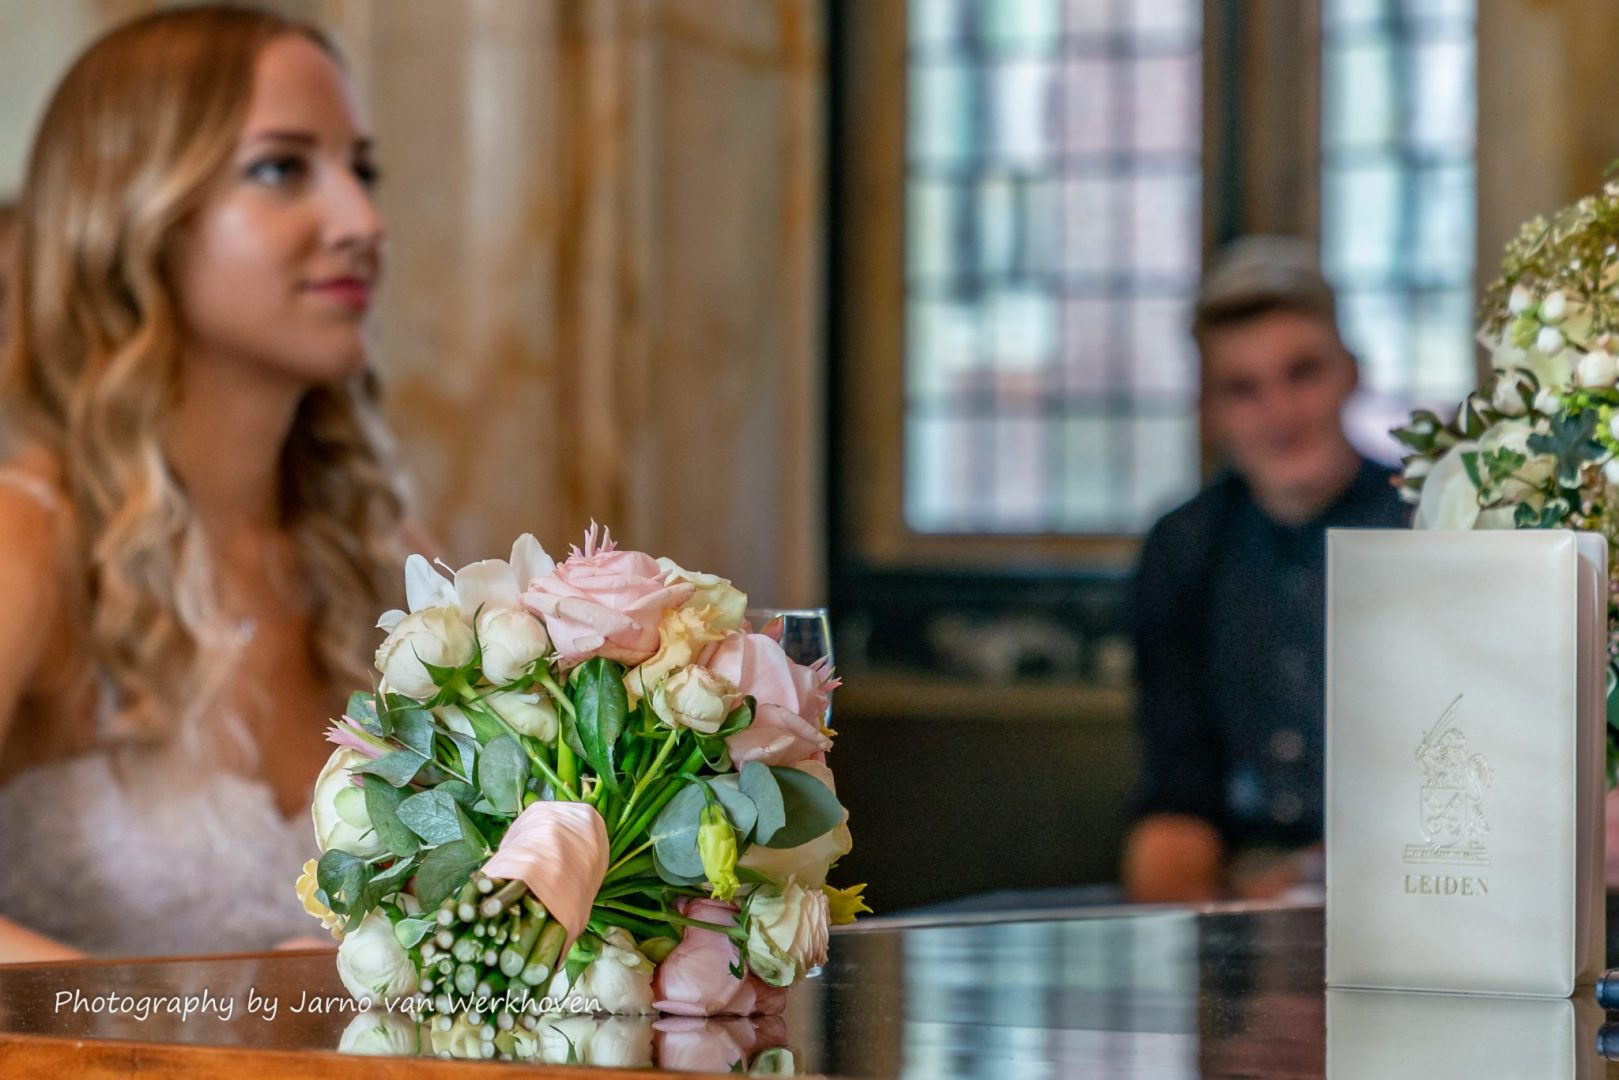 The ceremony situated in Leiden, City Hall. :)